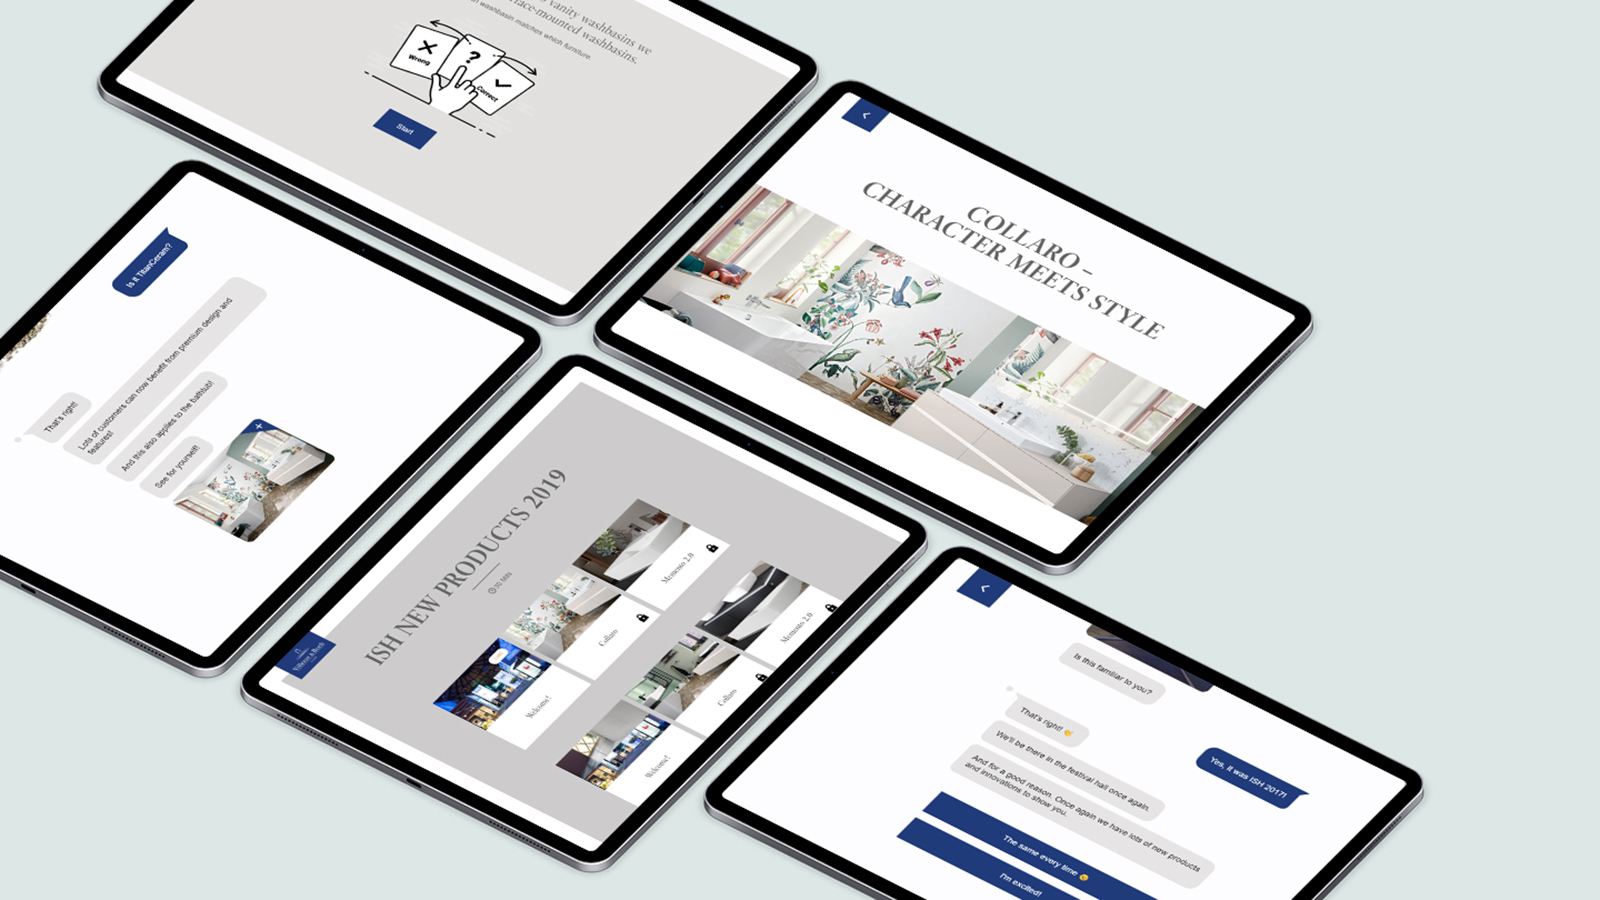 case study chatbot web based training kundenreferenz villeroy boch